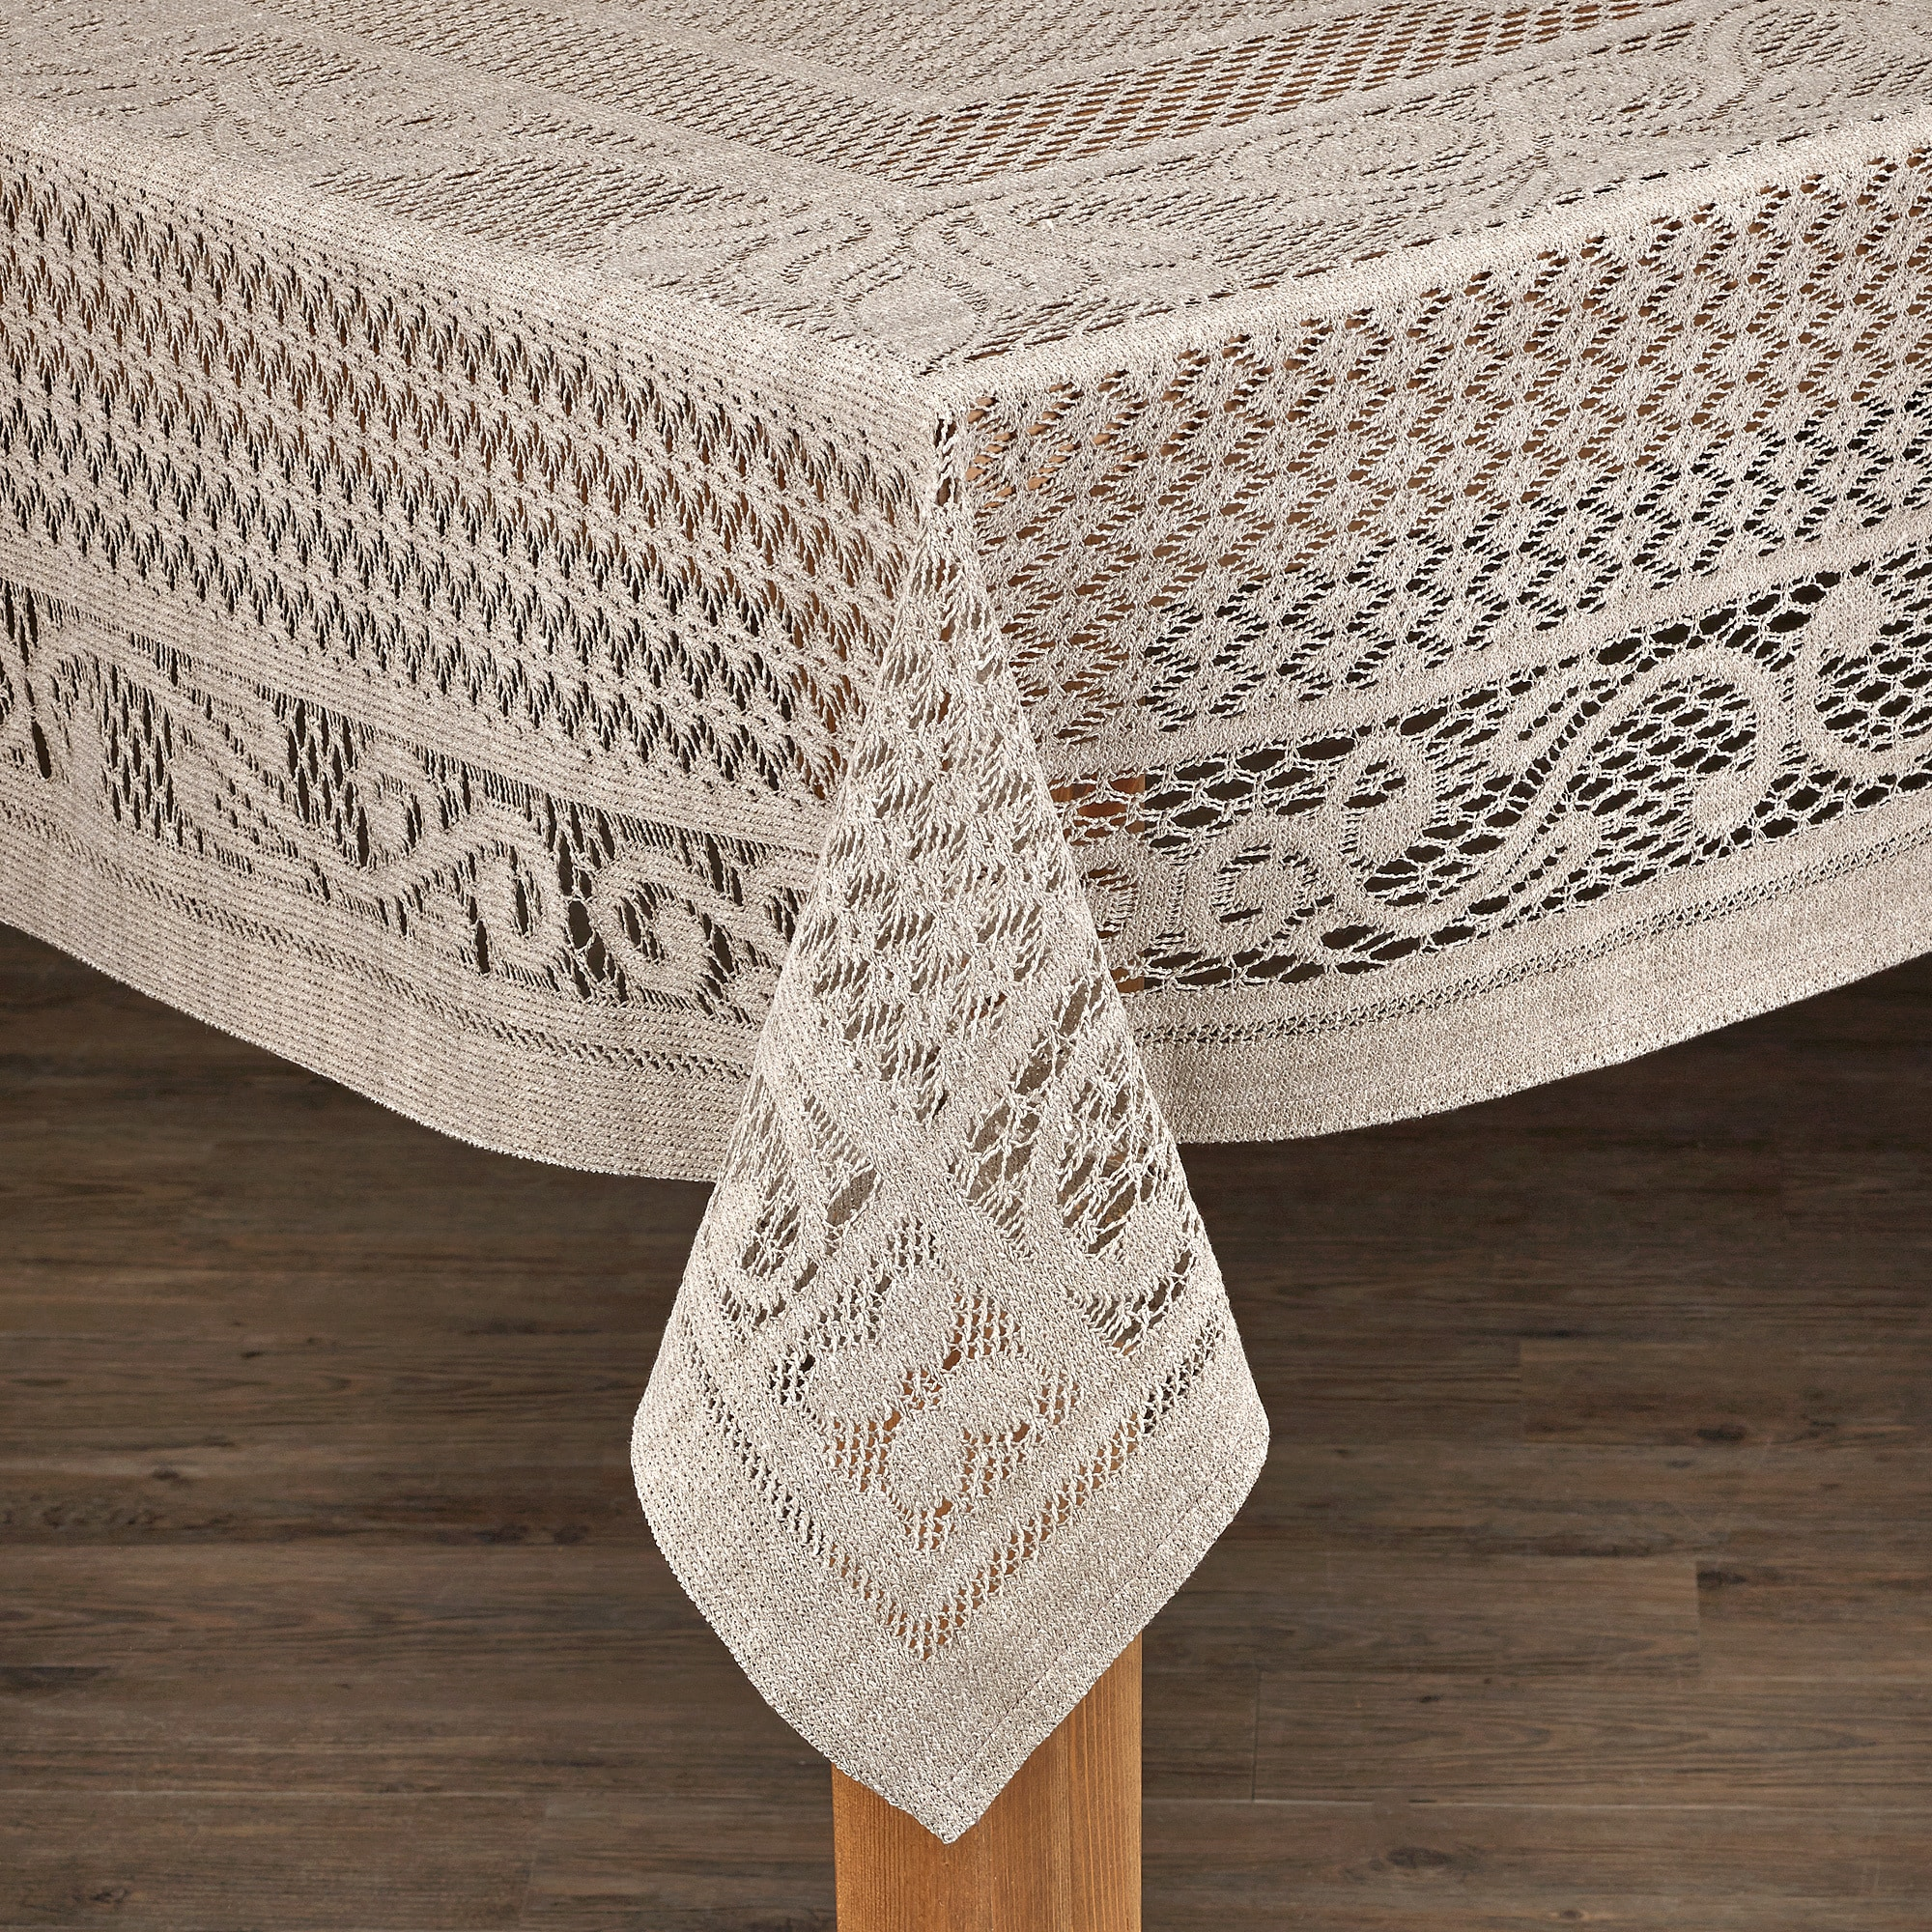 Chantilly Crochet Cotton Tablecloth Imported from Spain (...